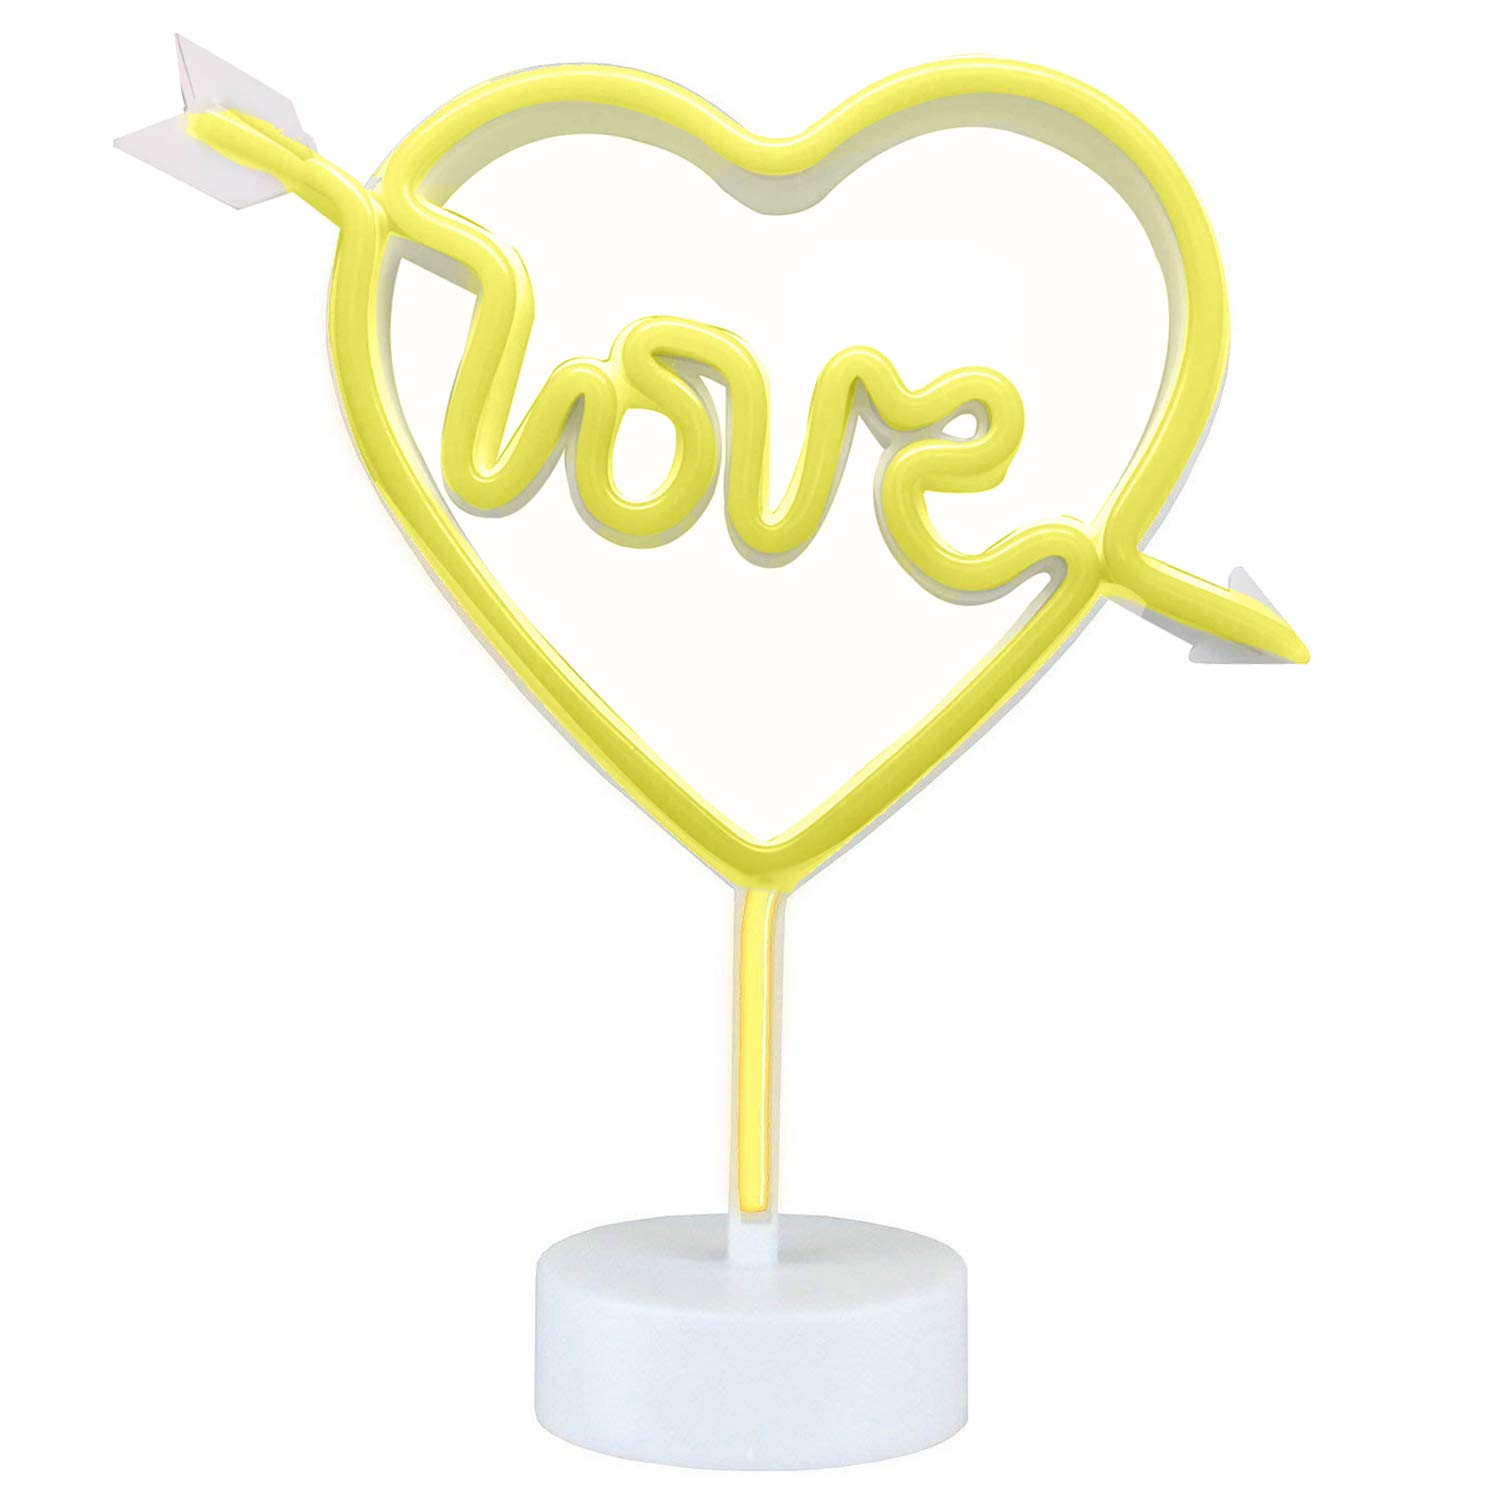 Neon Light Sign,Neon Lamps,Marquee Battery or USB Operated Table Led Ligths Wall Decoration for Girls Bedroom,Living Room, Christmas,Party as Kids Gift (Have Love in My Heart)